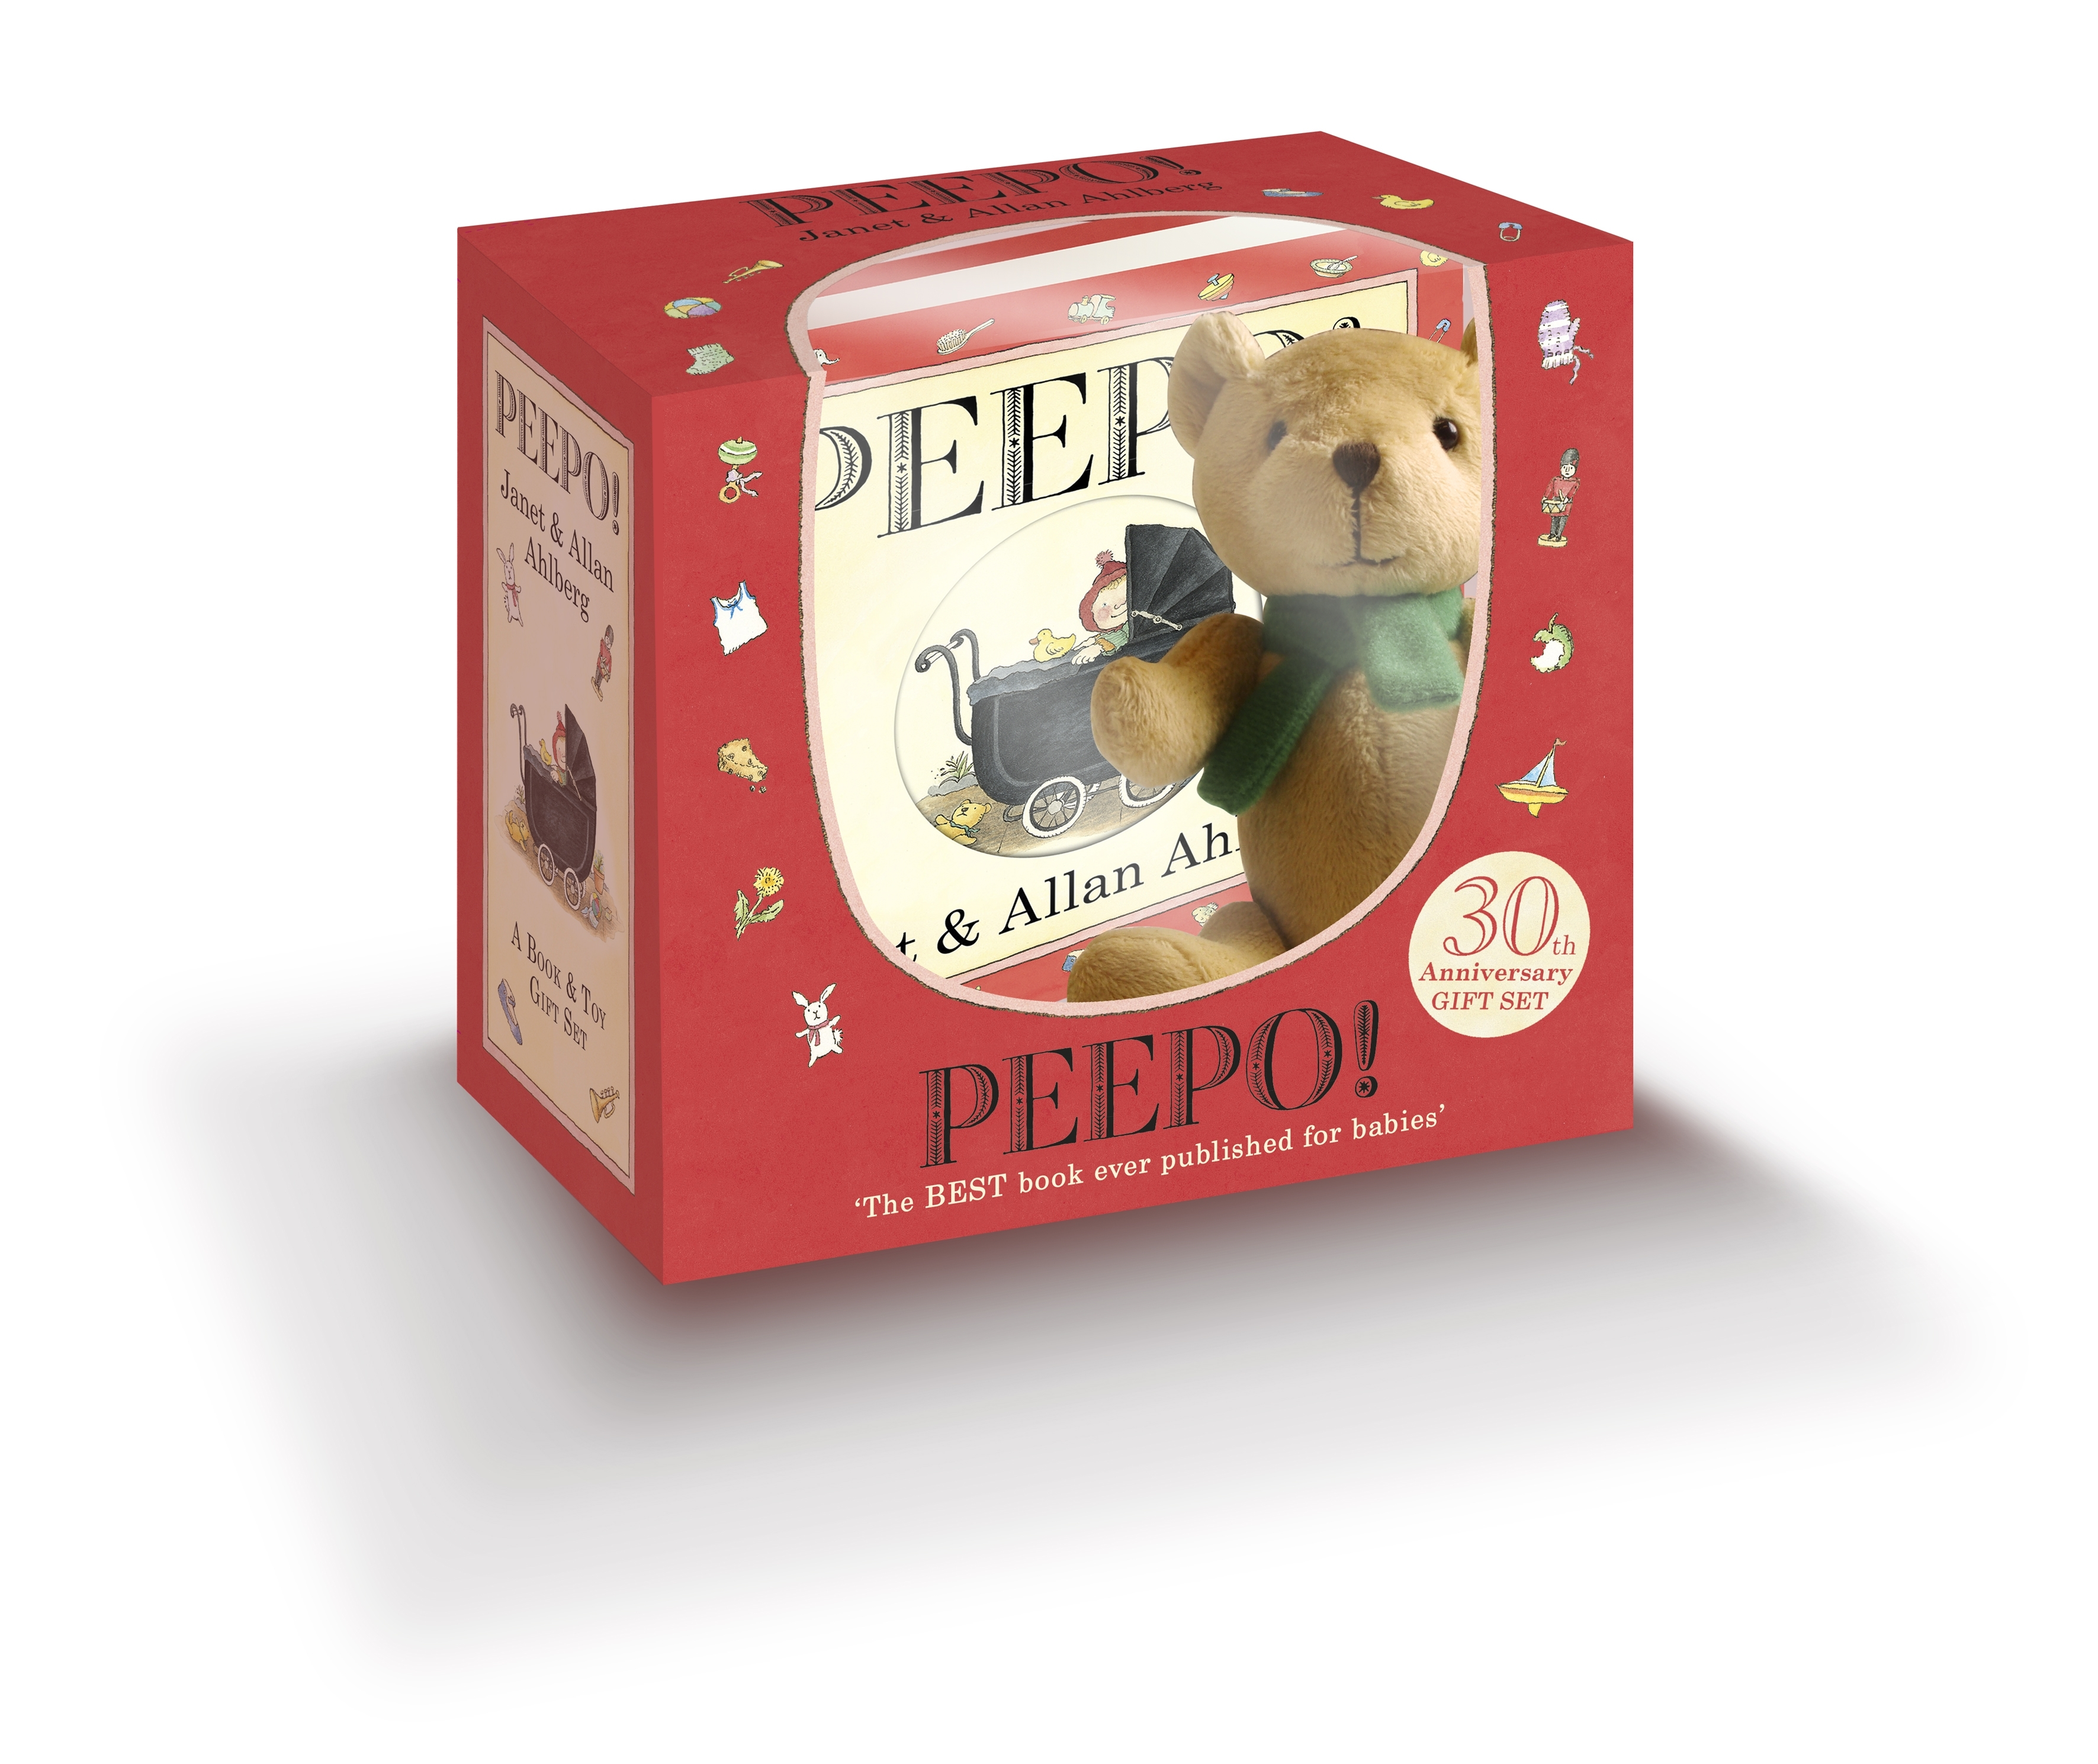 Penguin Book Cover Gifts : Peepo gift box th anniversary by allan ahlberg